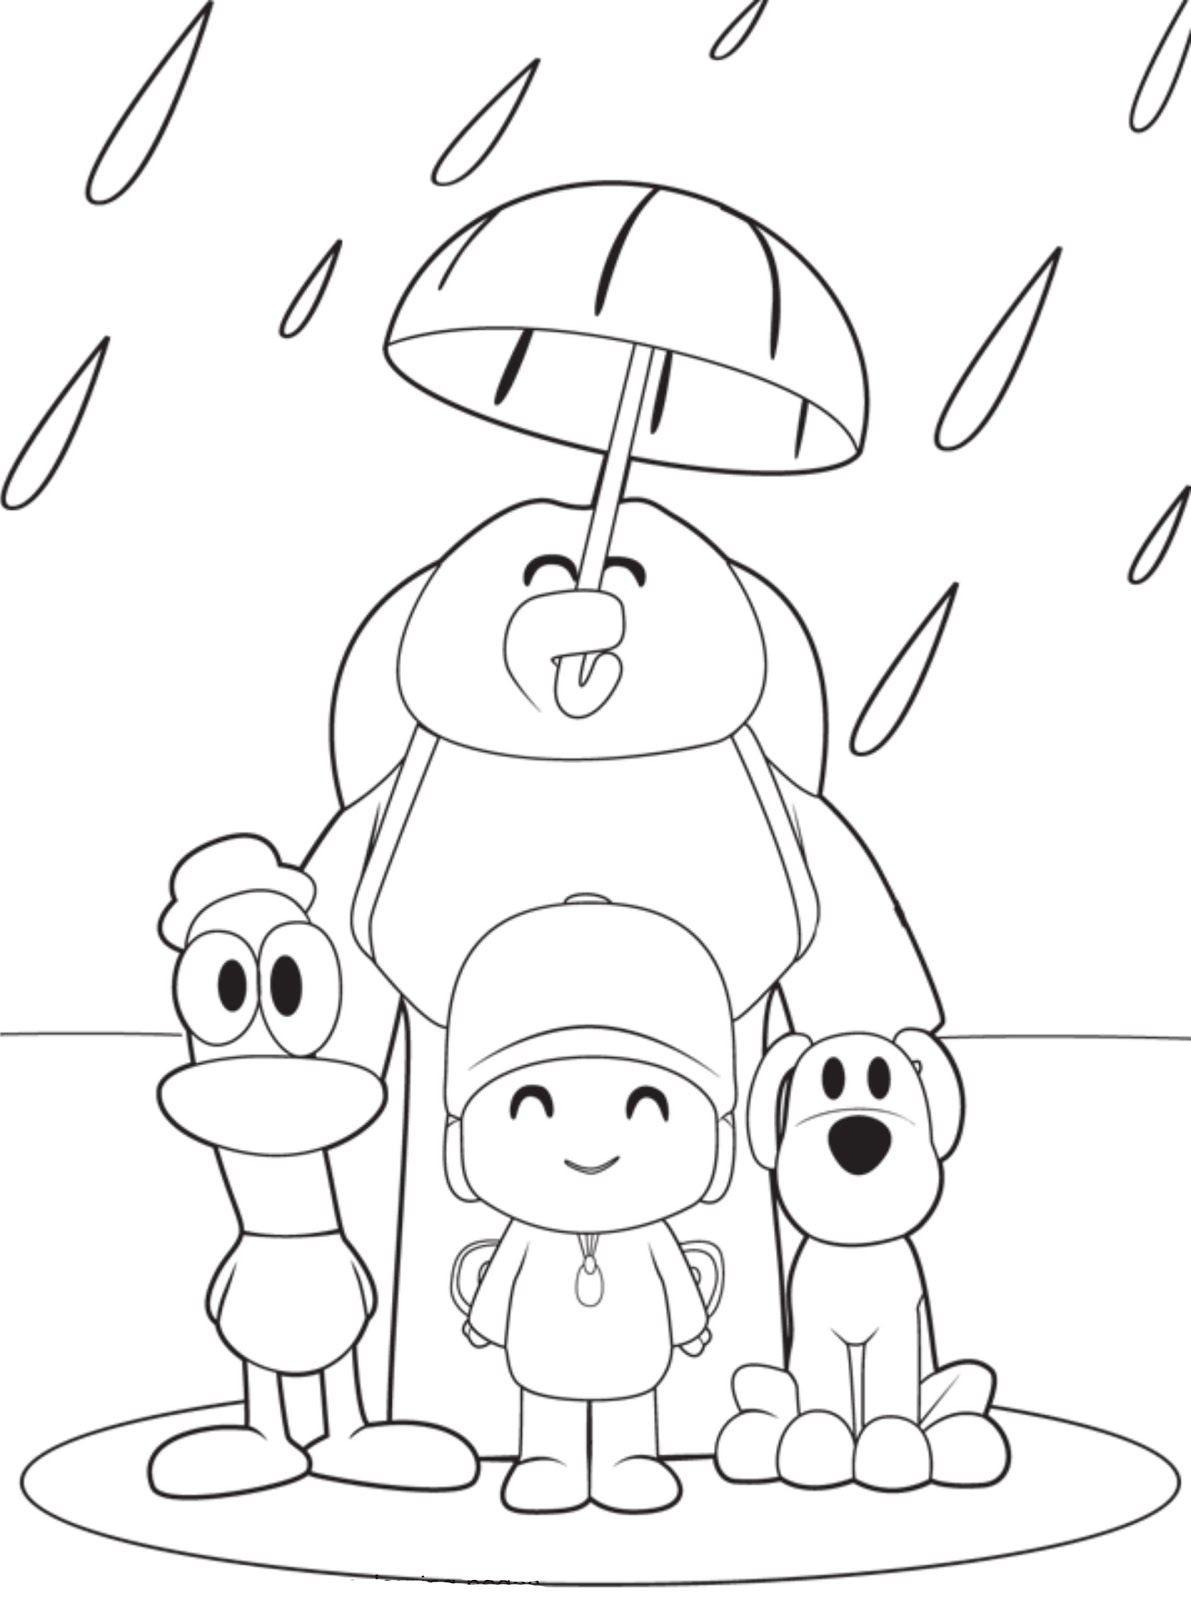 Pocoyo Coloring Pages - Pocoyo Coloring Pages Free Printable Coloring Pages